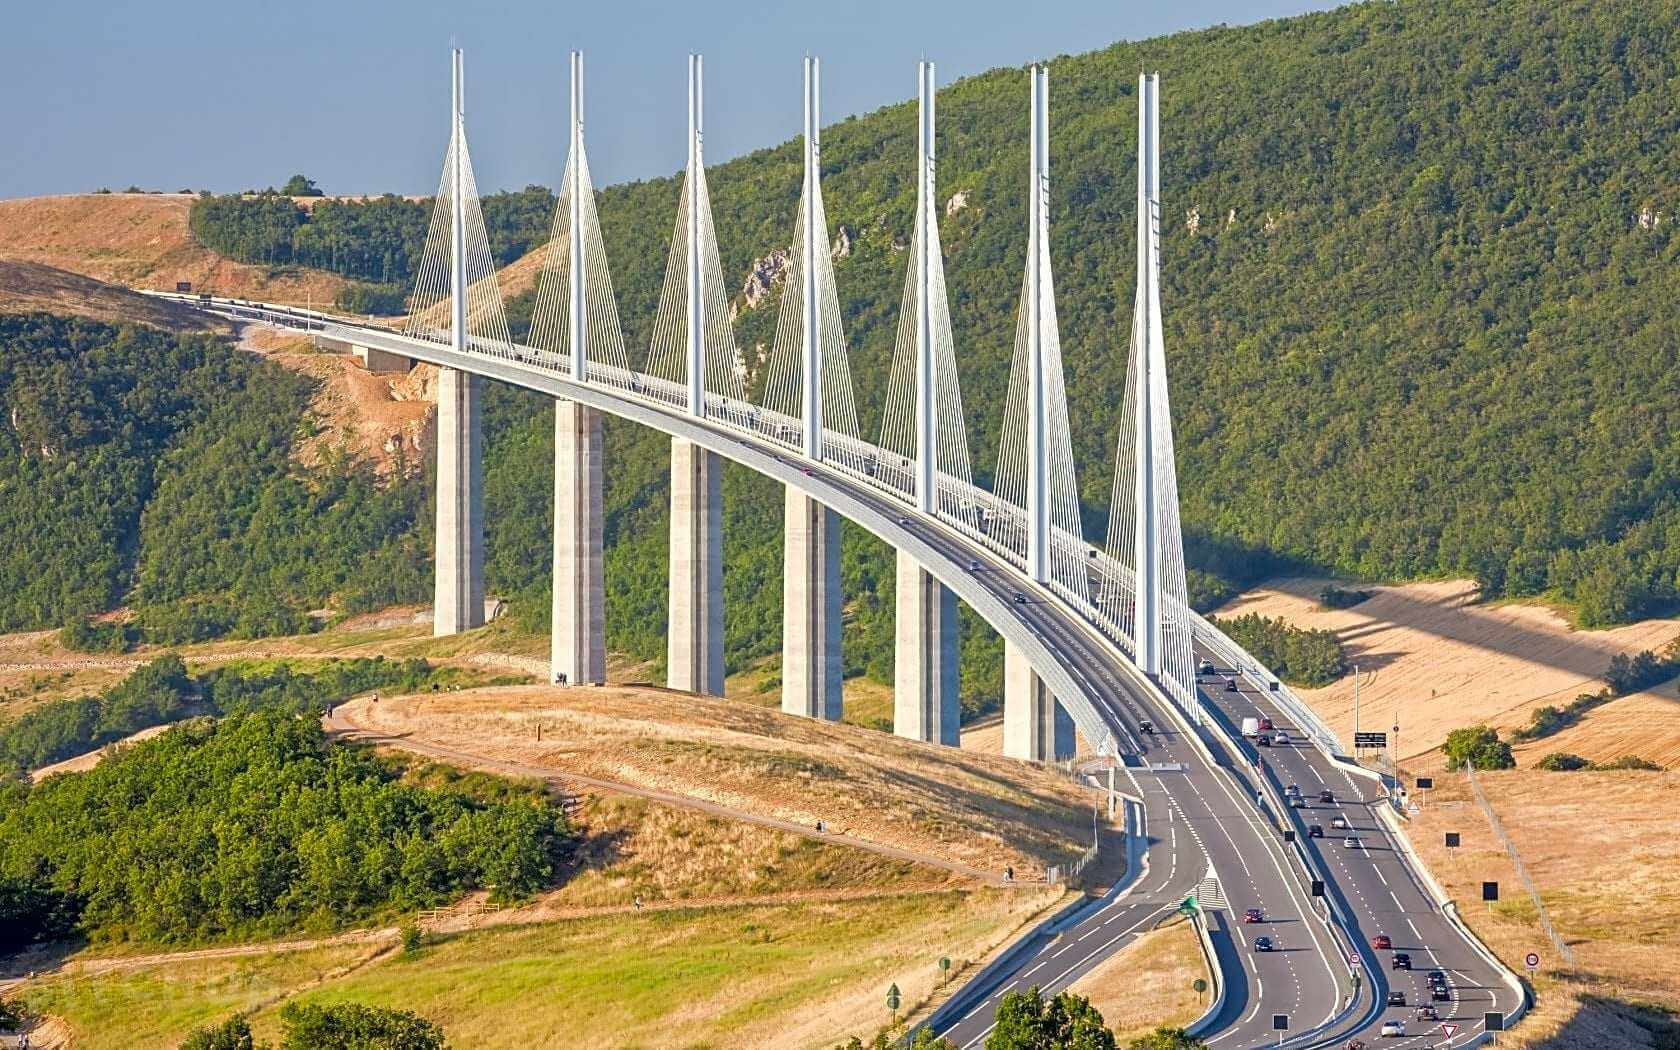 Tallest Bridges in the World